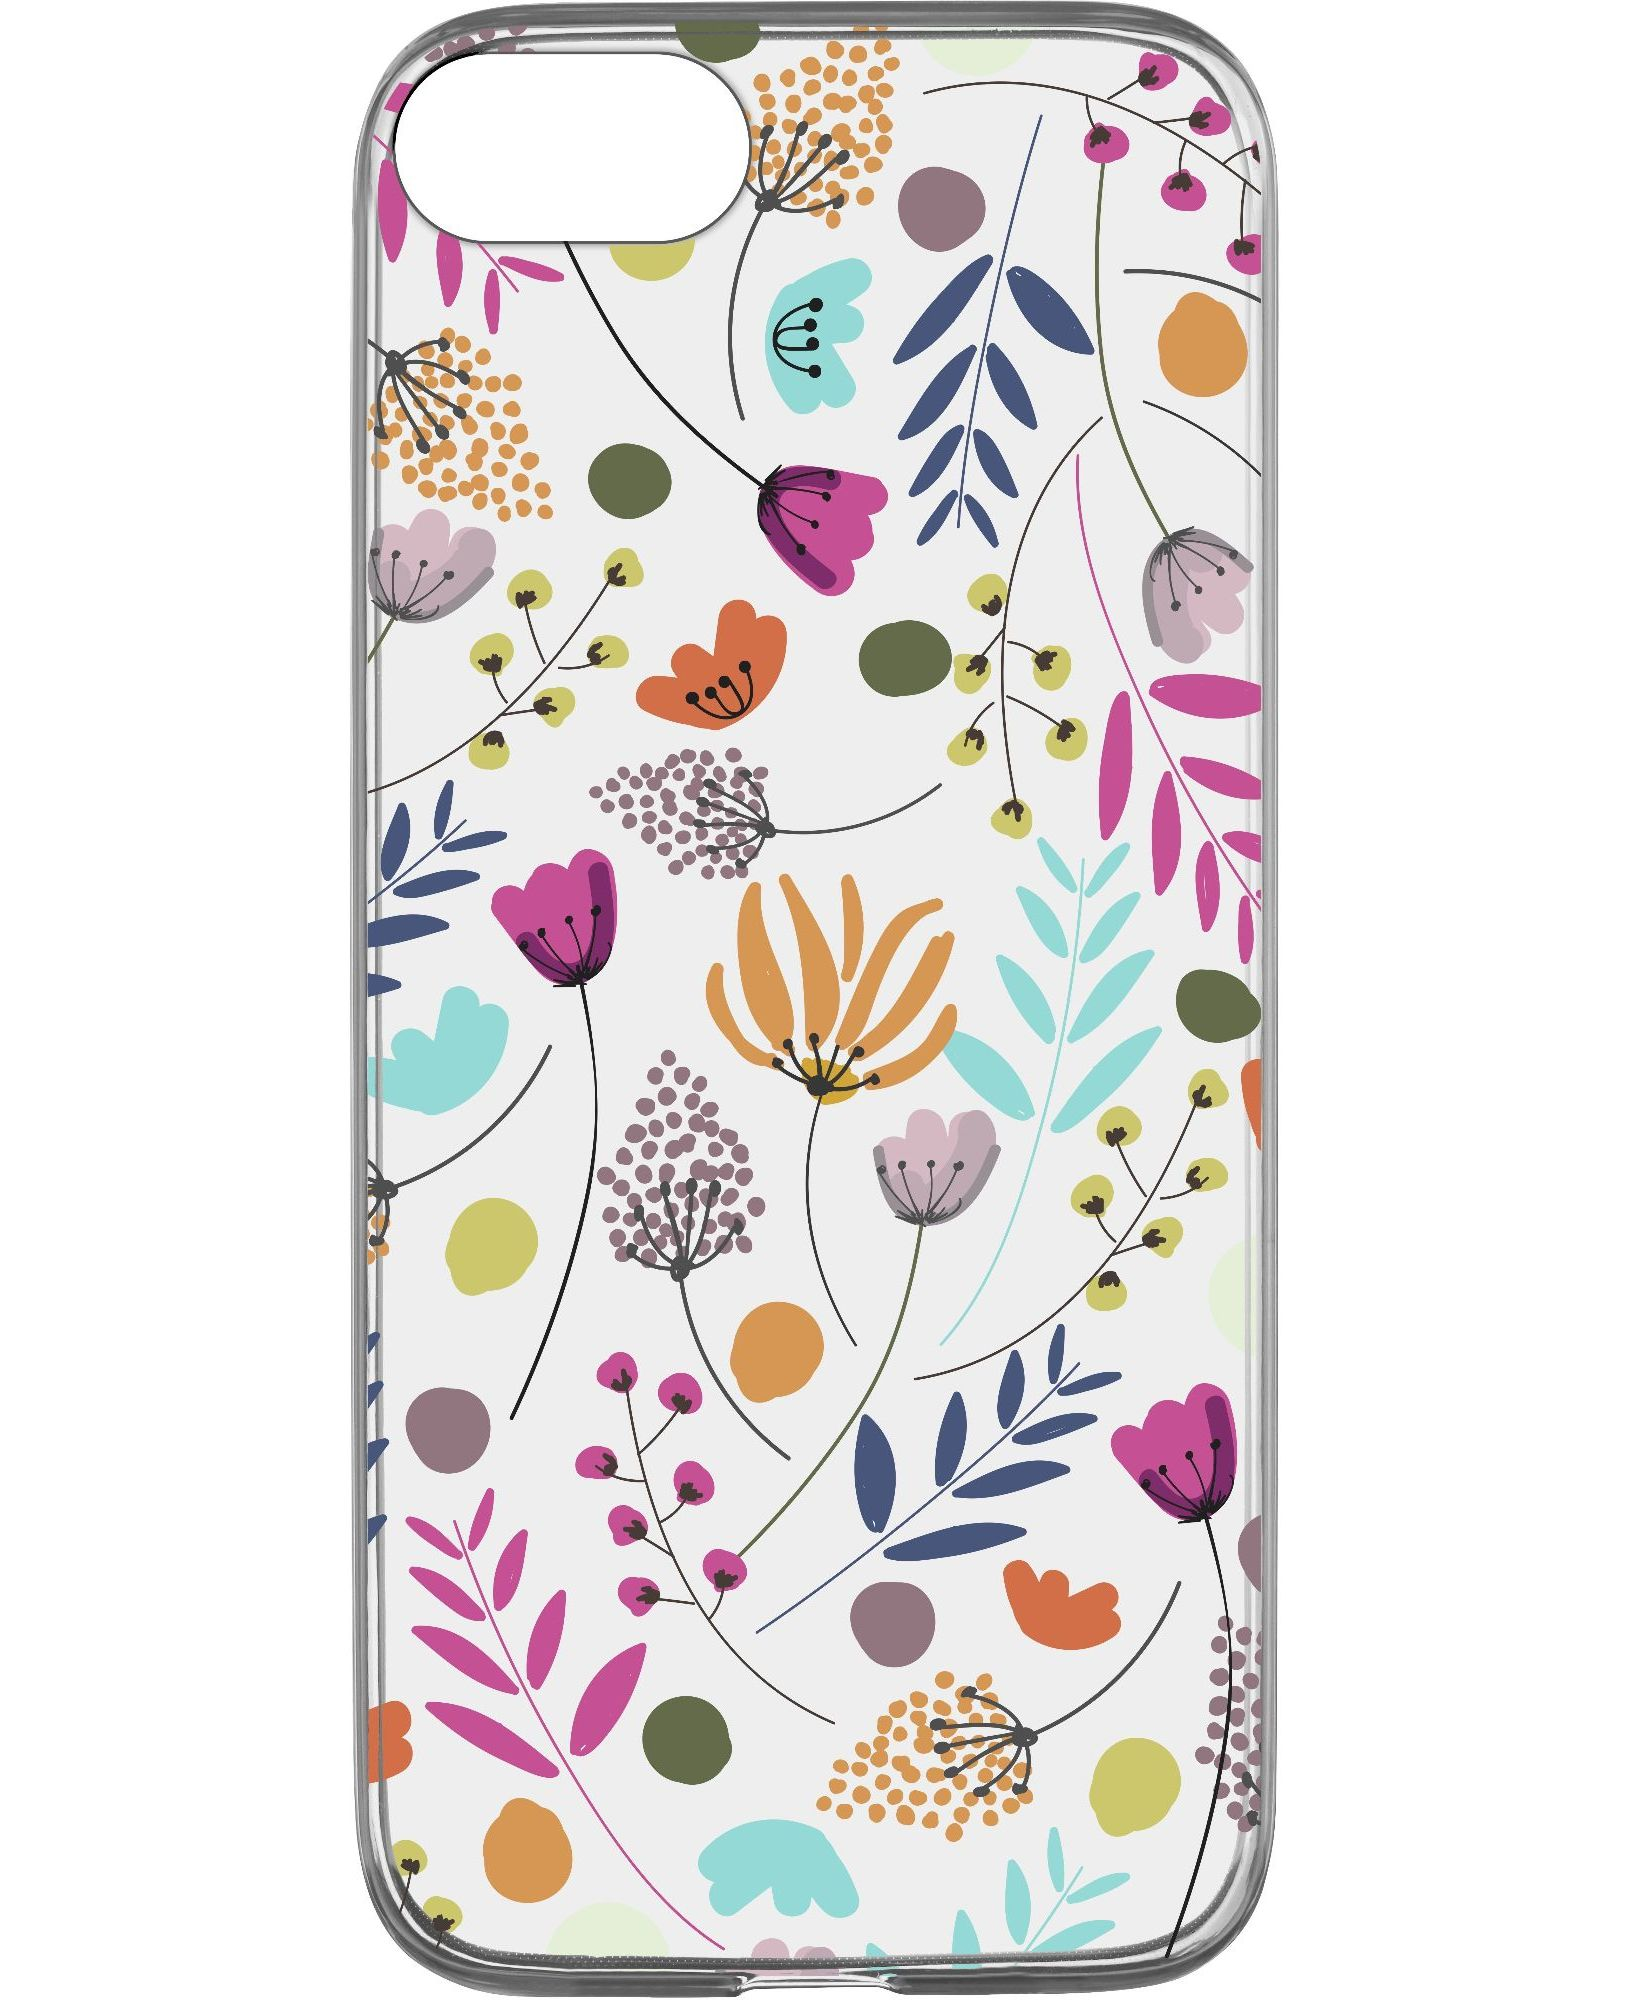 iPhone SE (2020)/8/7/6s/6, case style, flower power